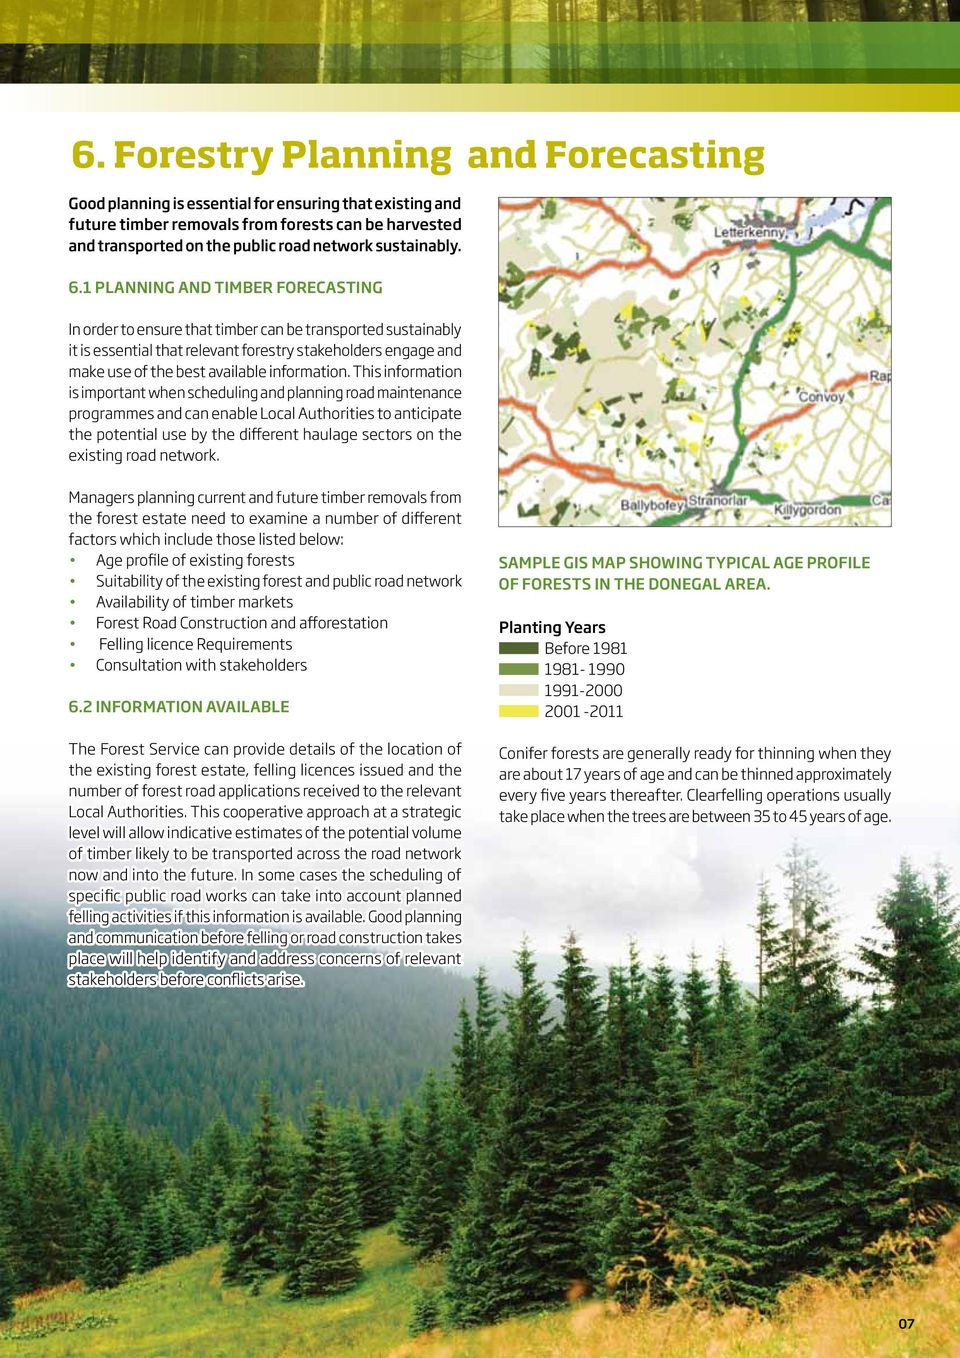 1 Planning and Timber Forecasting In order to ensure that timber can be transported sustainably it is essential that relevant forestry stakeholders engage and make use of the best available